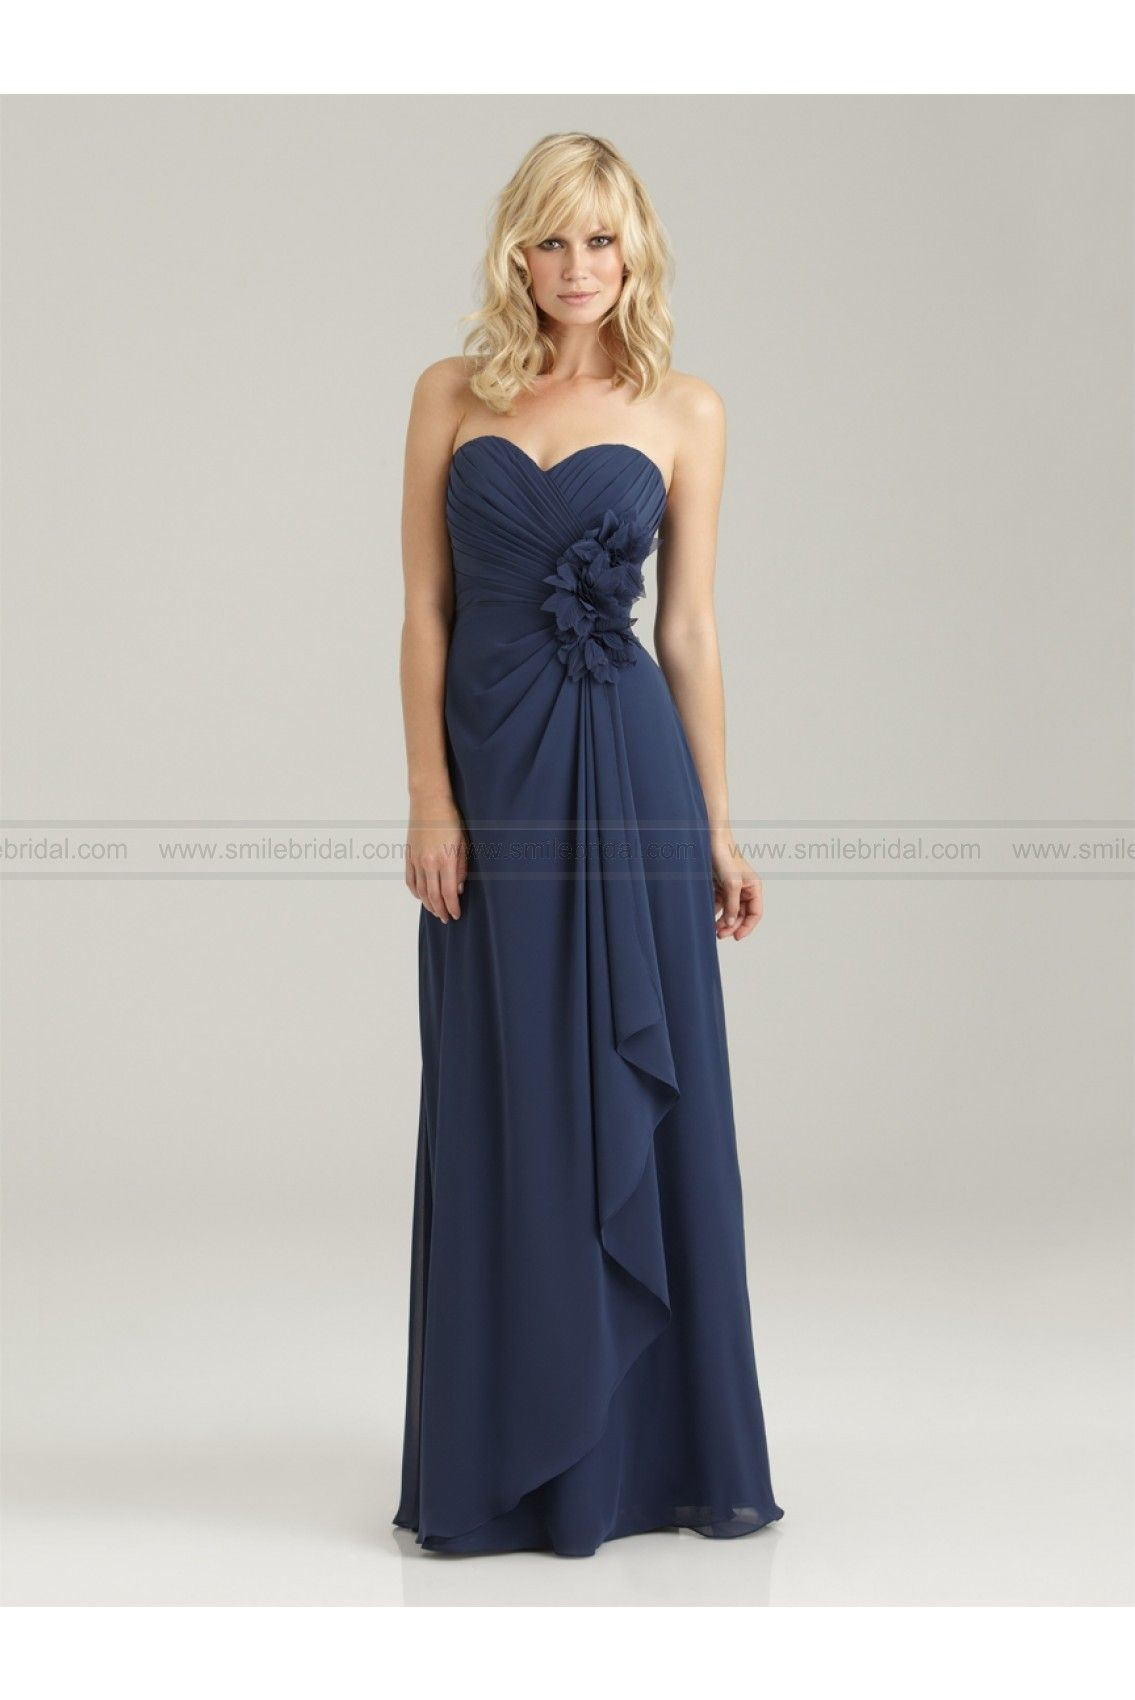 Asym sweetheart ruched handmade flower trimmed bridesmaid gowns